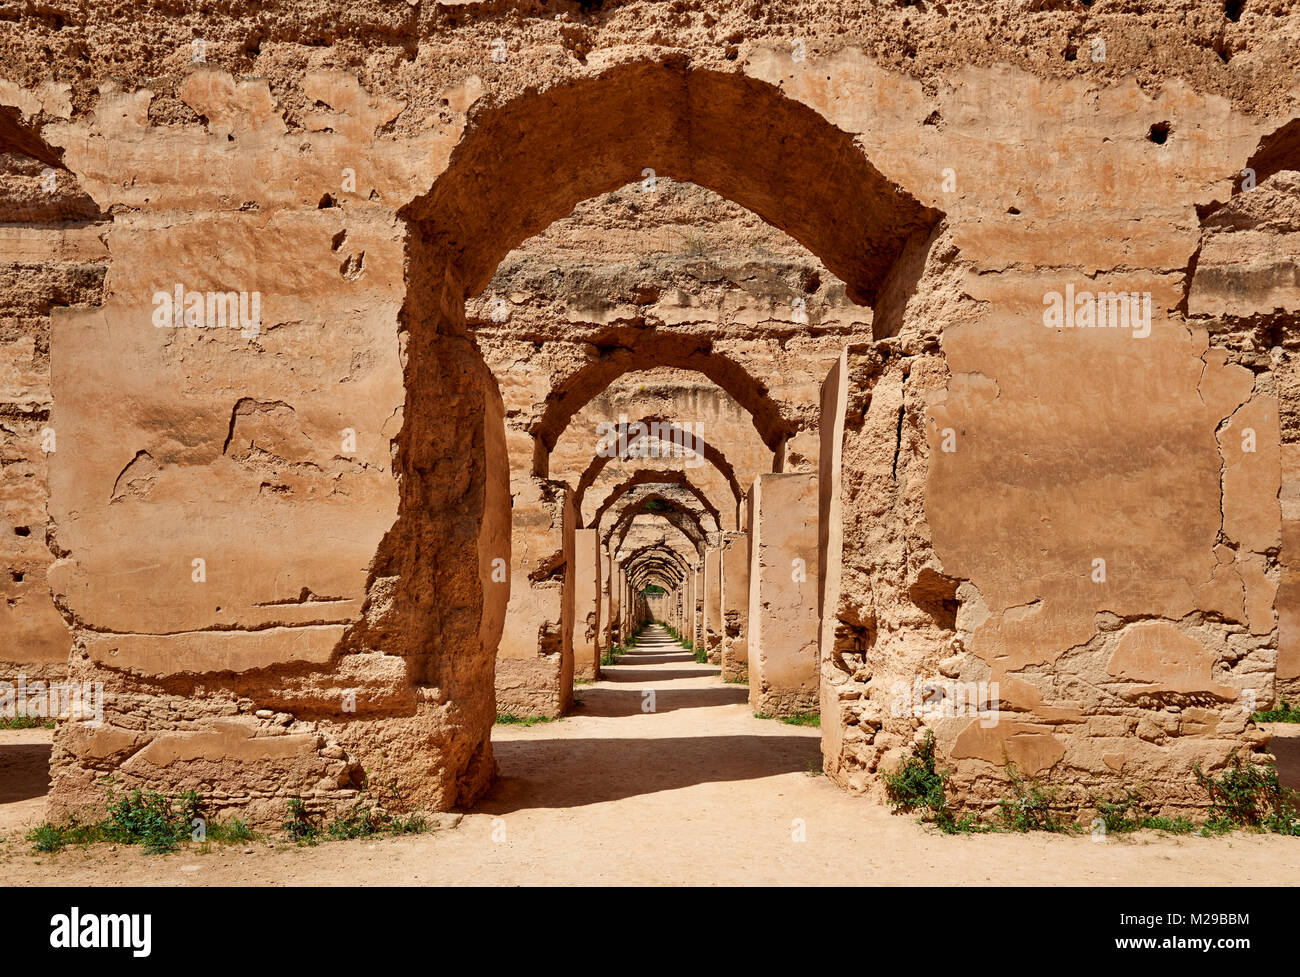 Heri es-Souani, Imperial Royal Stables, Meknes, Morocco, Africa Stock Photo